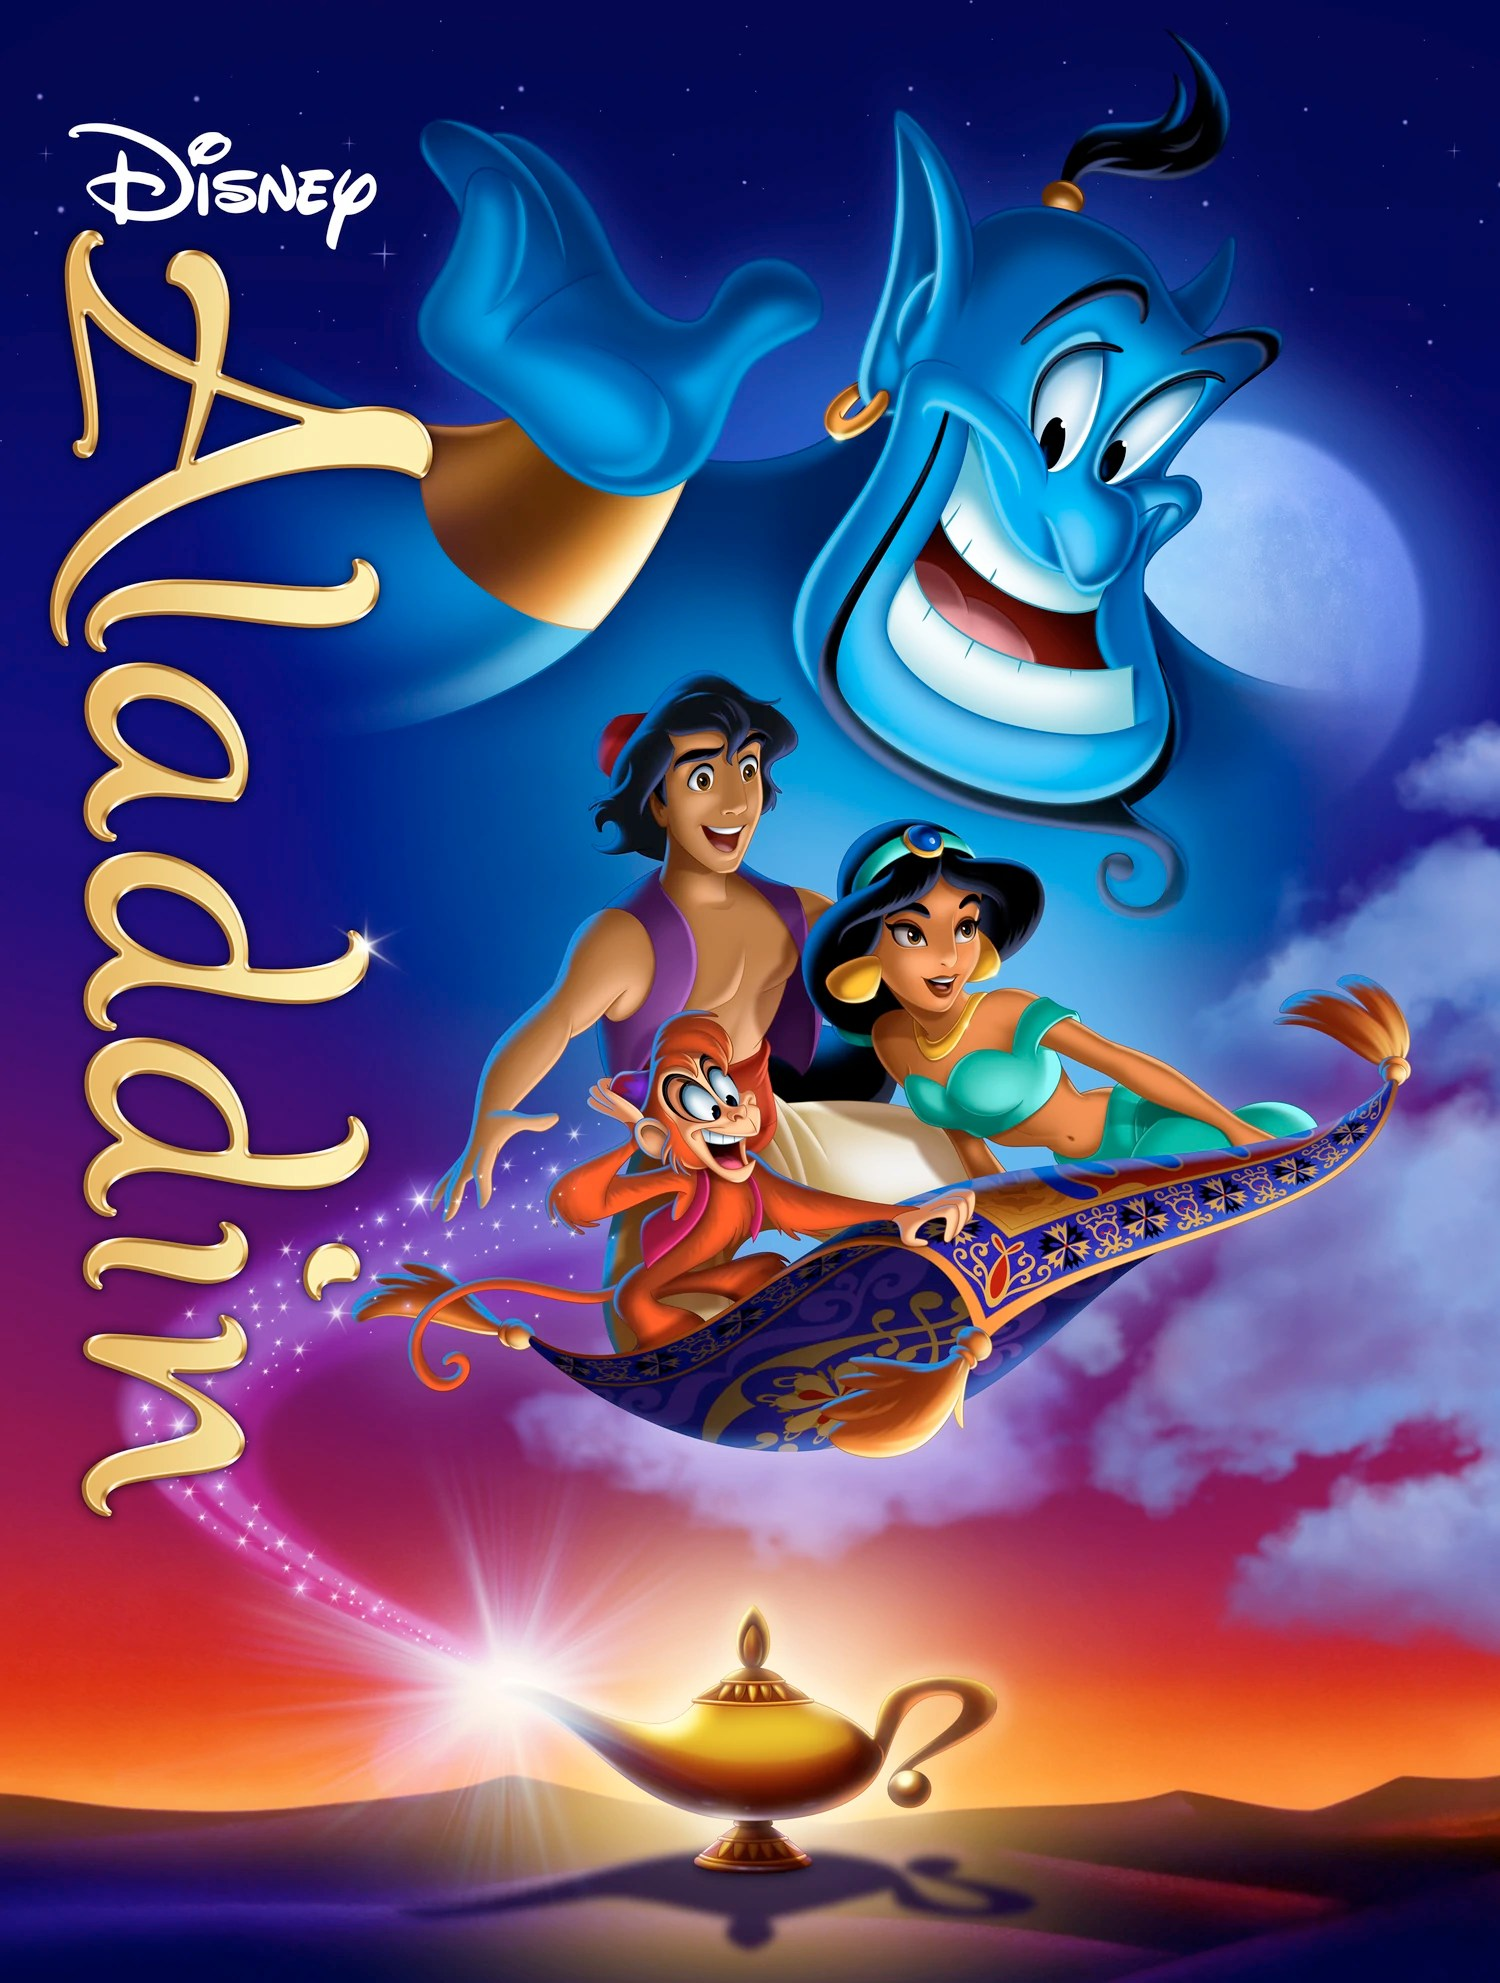 Alfombra Pinocchio Image Aladdin Digital Copy Official Jpg Disney Wiki